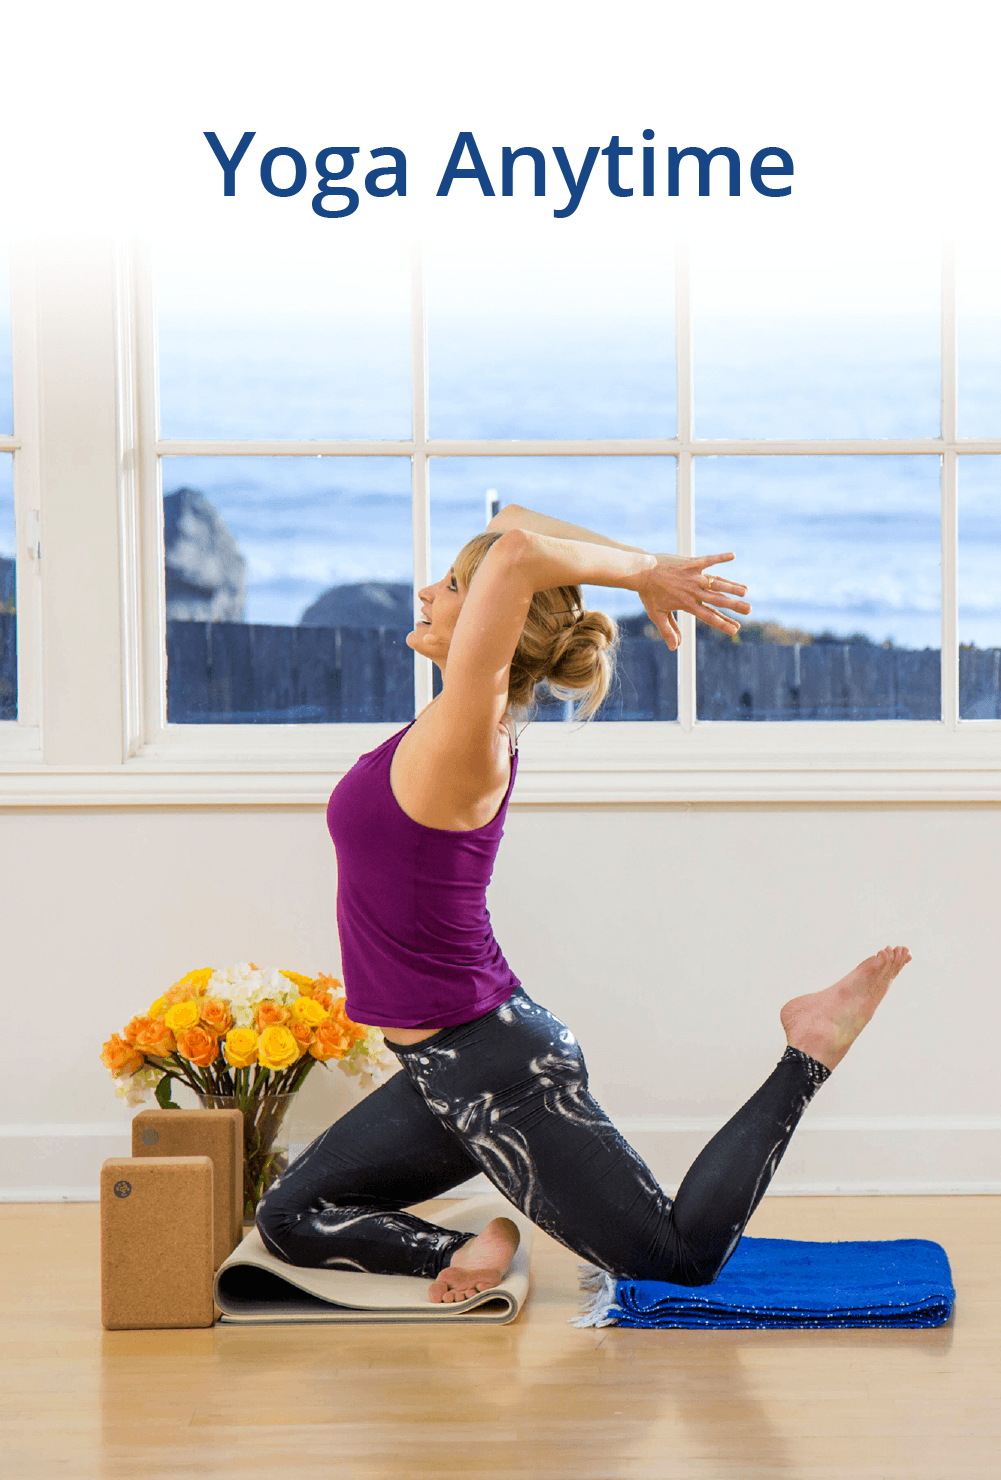 """These online classes will allow you to experience how I would teach a live class to my students. You can also use them to explore your personal movement practice or get new ideas for teaching your own classes and workshops. <a class=""""button"""" href=""""https://trinaaltman.com/yoga-anytime/"""">LEARN MORE</a>"""